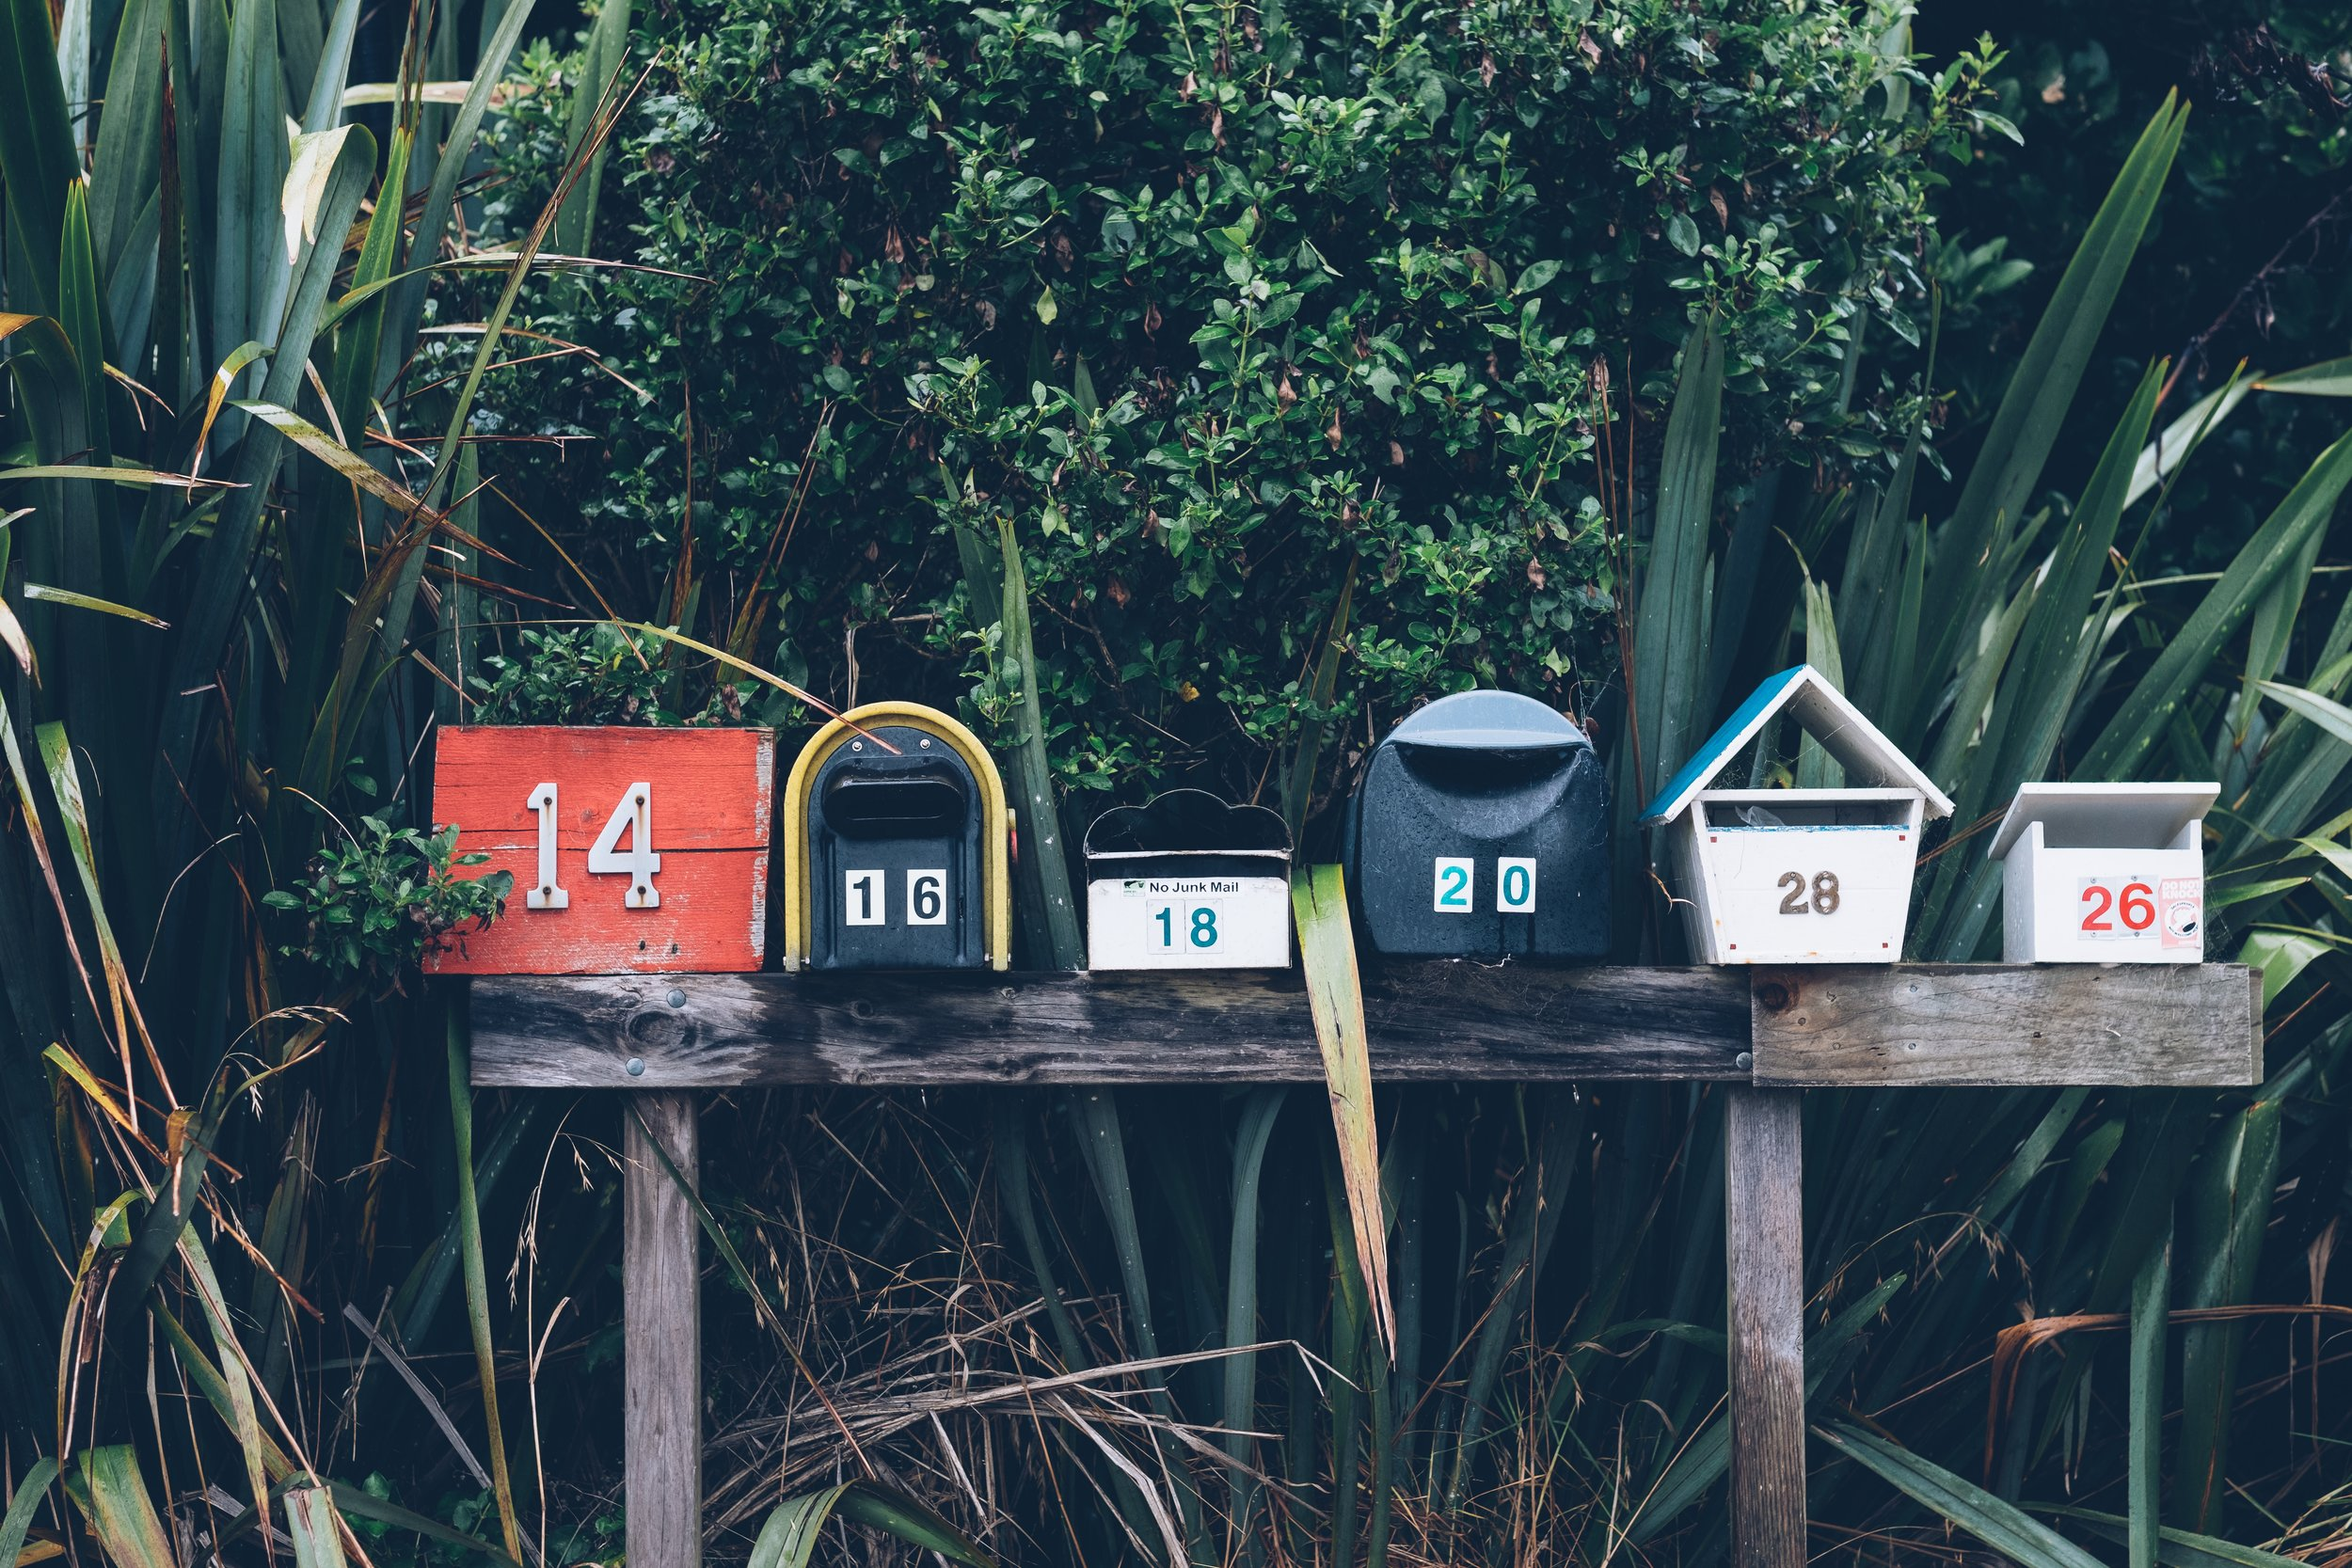 Create an e-mail newsletter that appeals to your unique audience's interests and they'll be happy to get your newsletter in their inboxes. (Photo credit: Mathyas Kurmann via Unsplash)